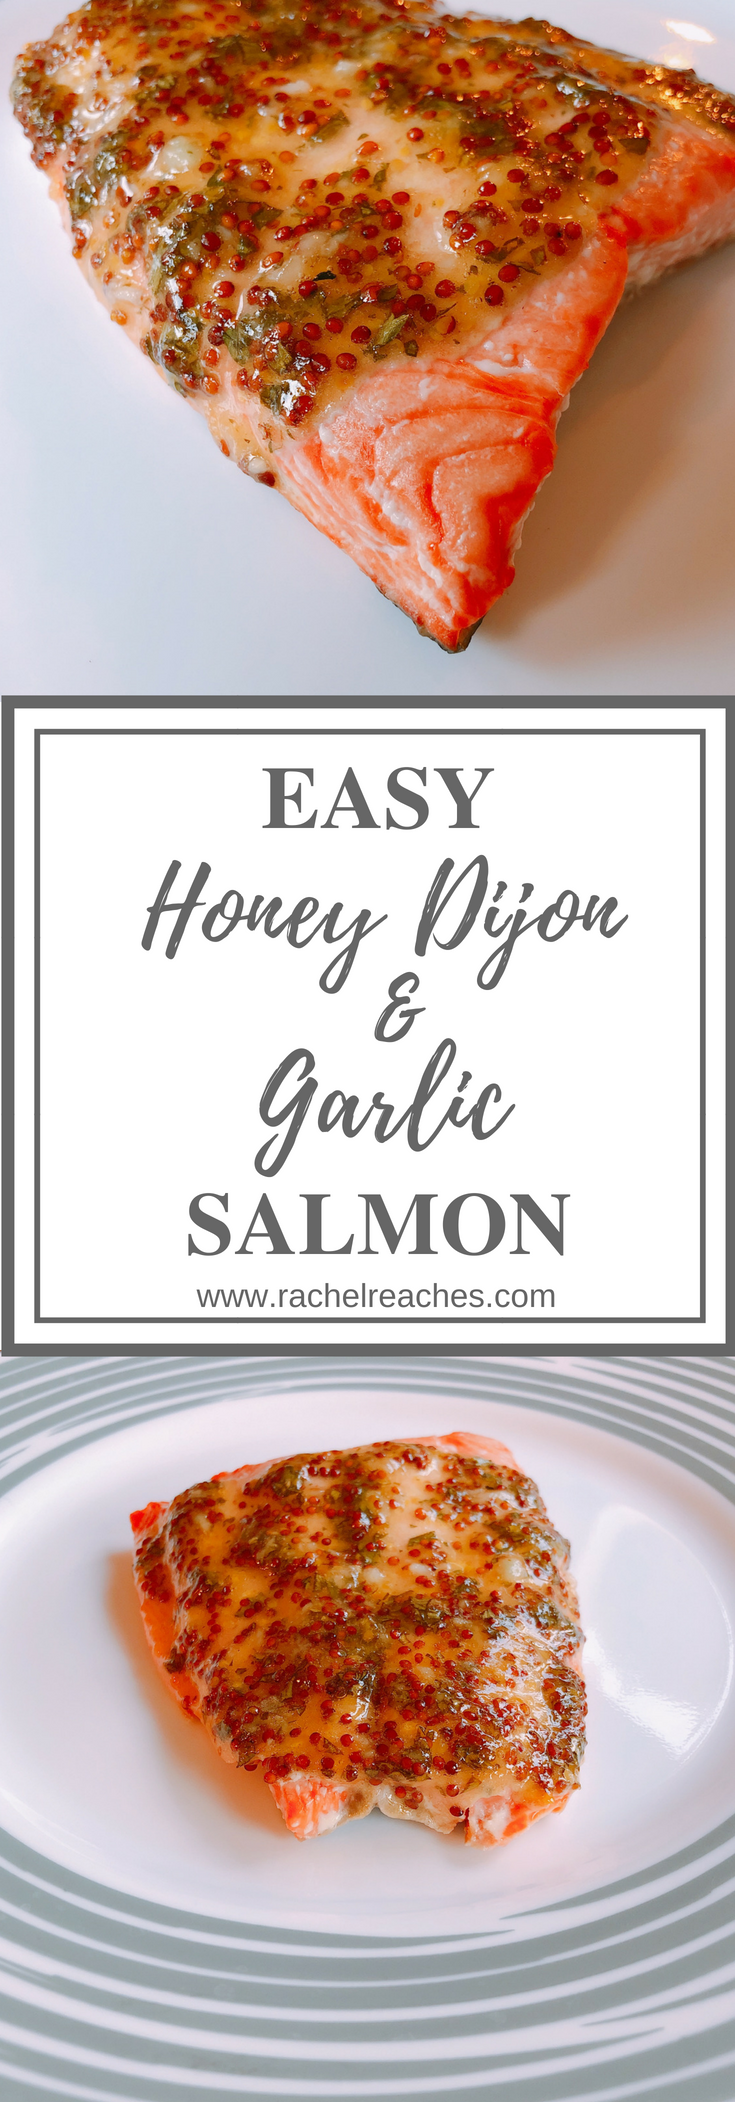 Honey Dijon & Garlic Salmon Pin - Healthy Eating.png